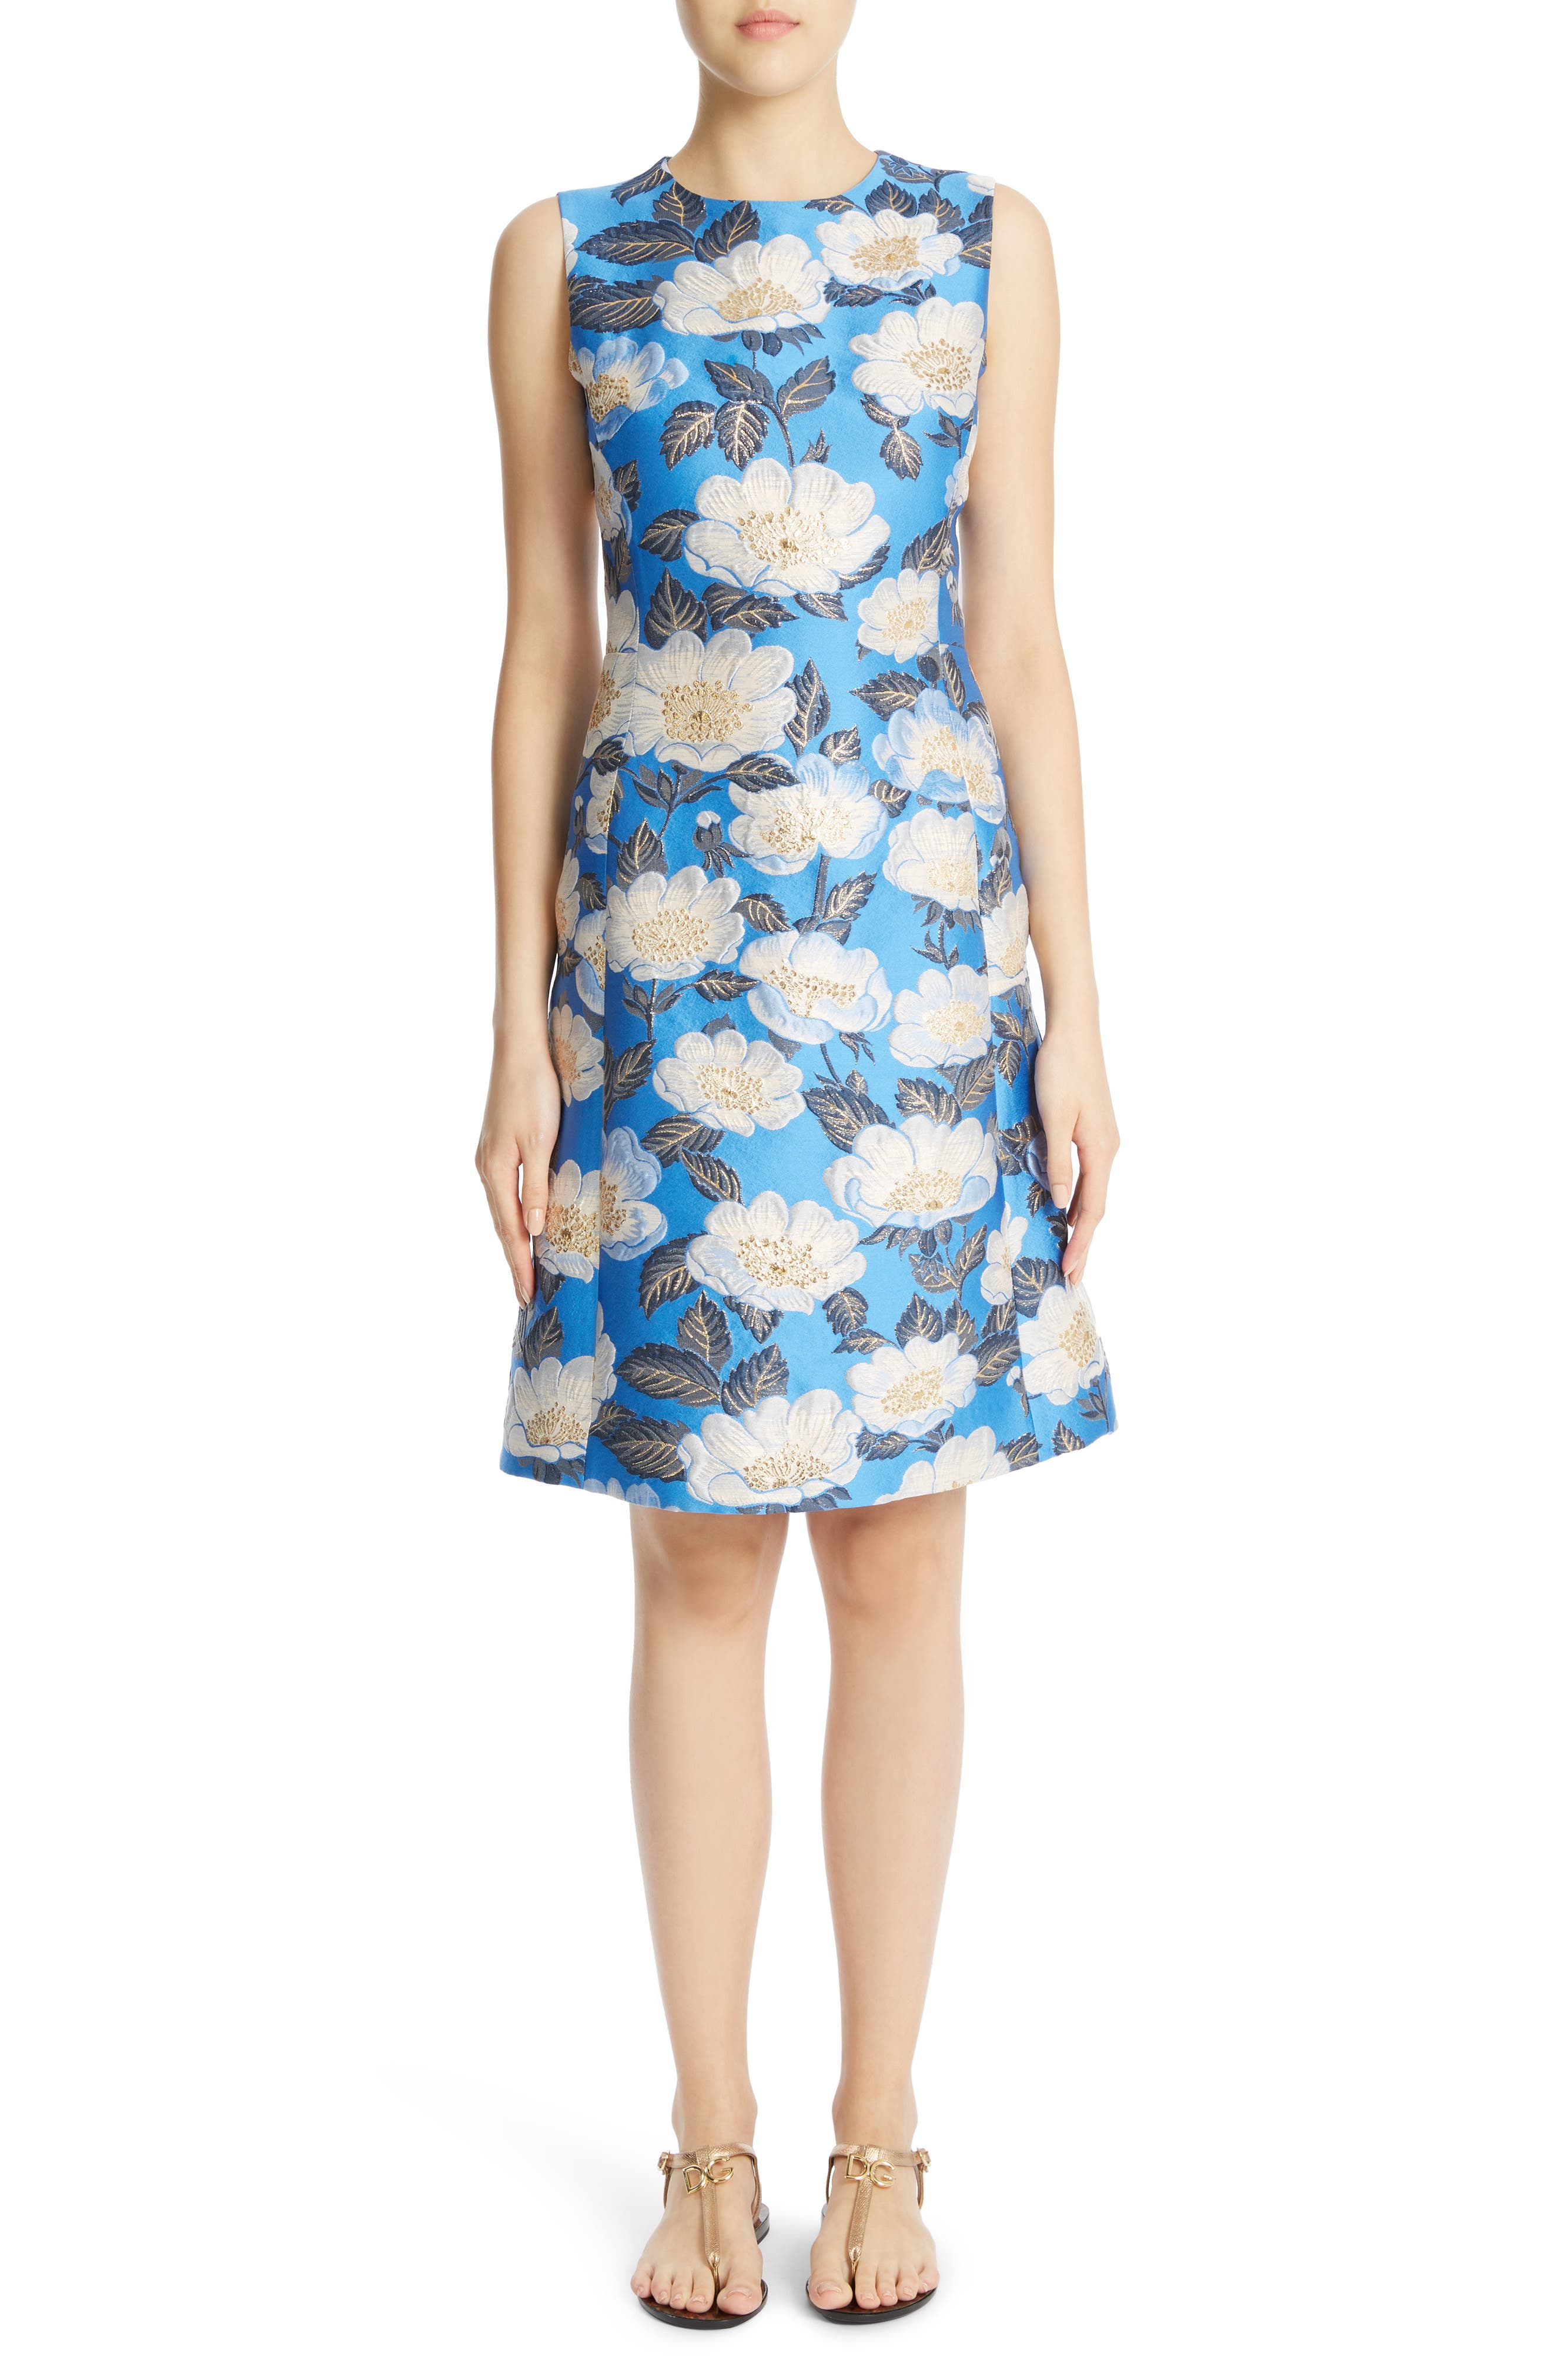 Dolce&Gabbana Floral Brocade Dress